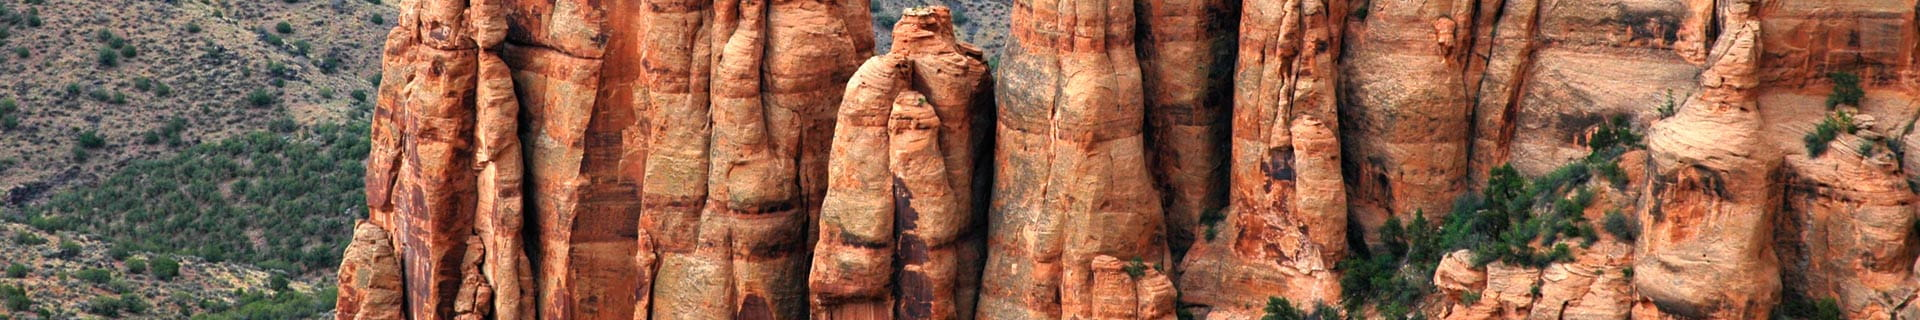 red-monument-rocks